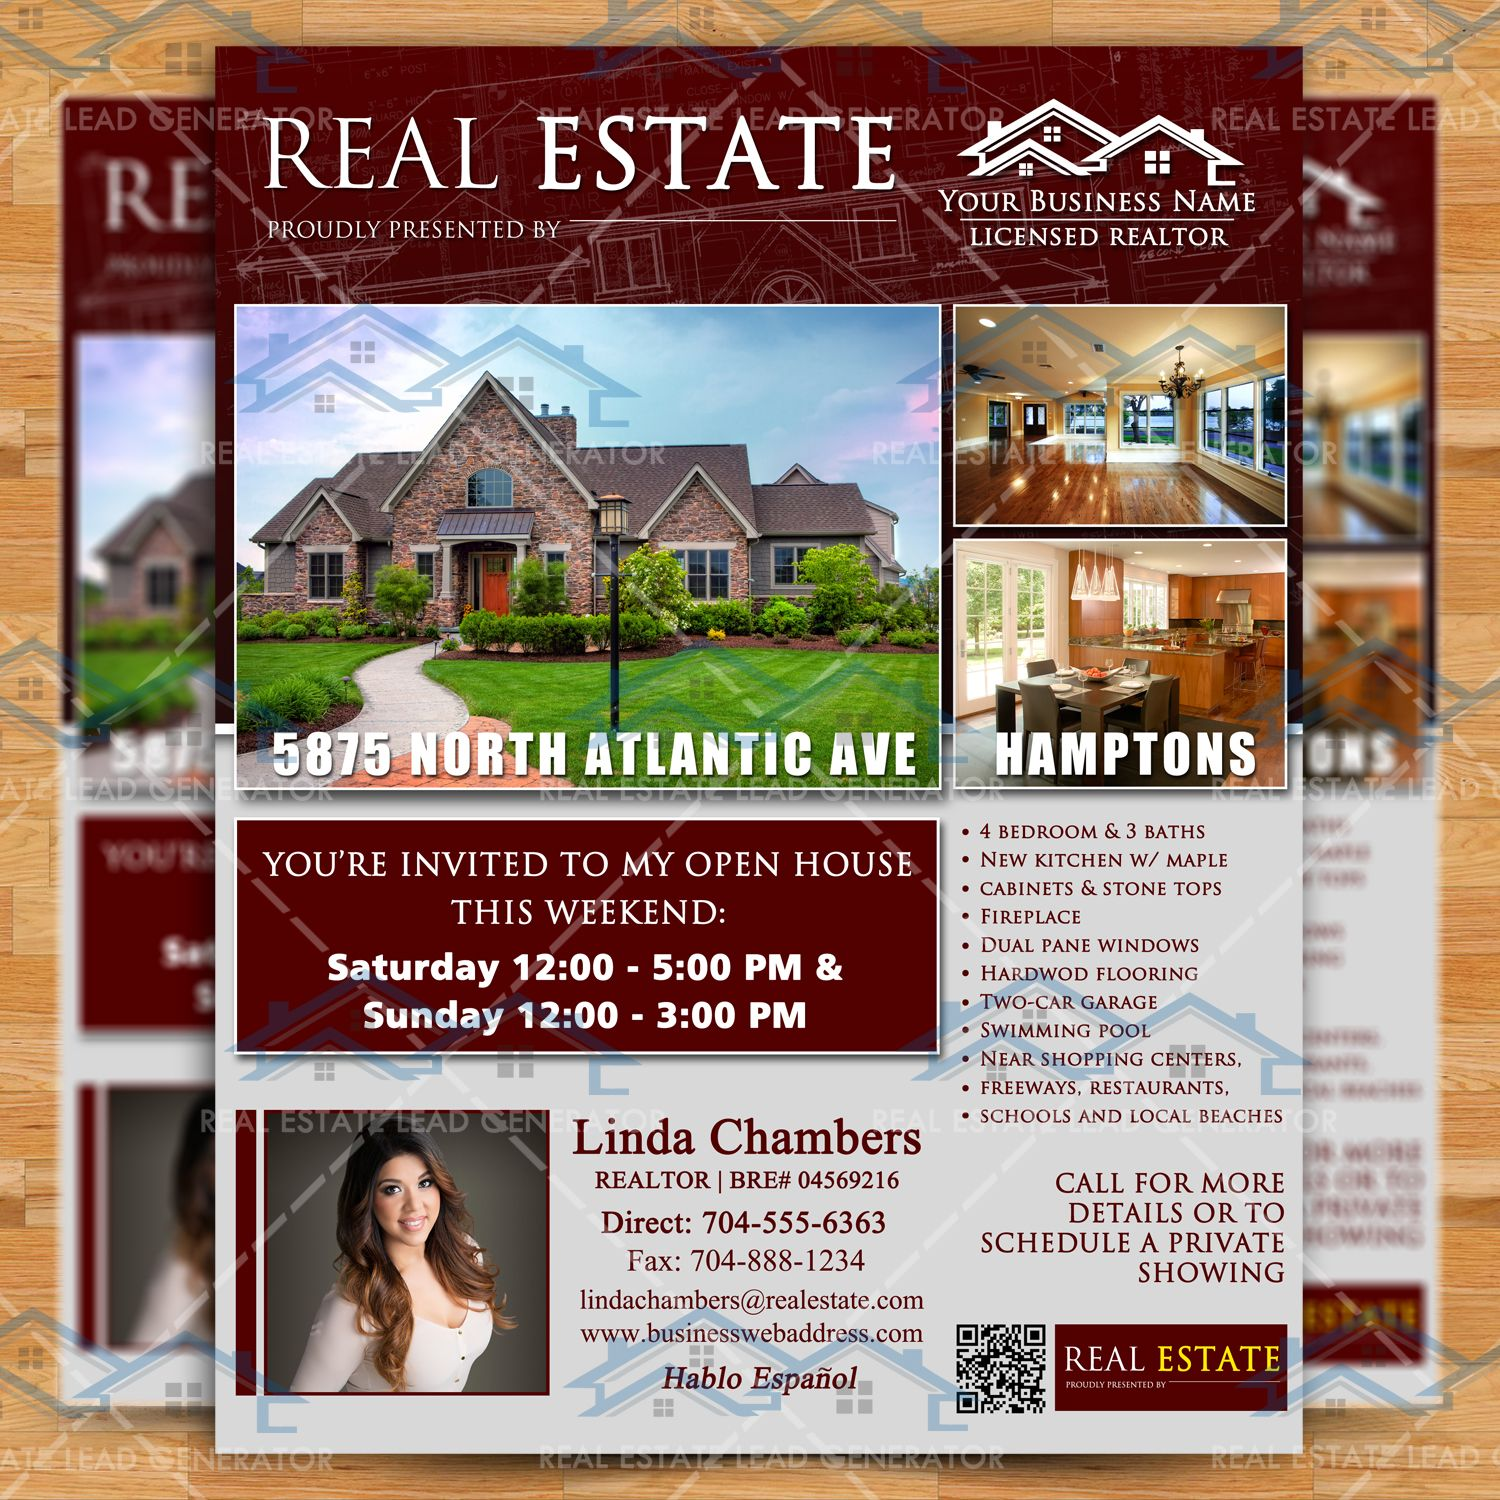 Open House Flyer Templates. open house flyer template 30 free psd ...